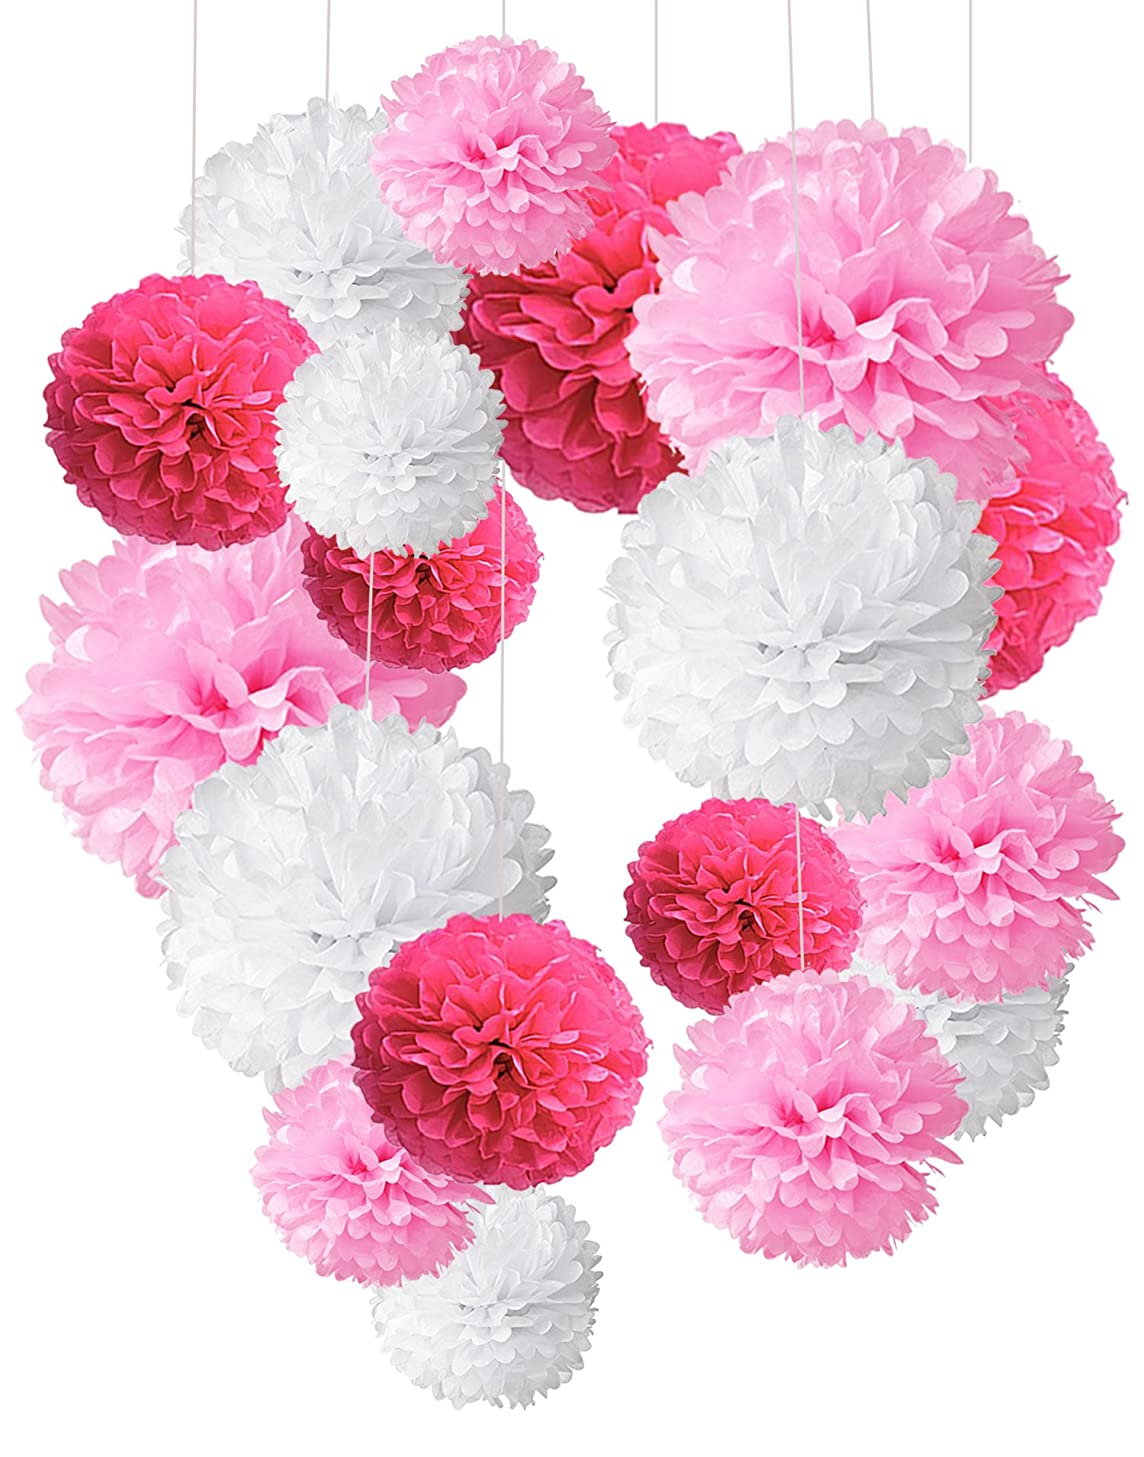 Tissue Paper Pom Poms, Recosis Paper Flower Ball for Birthday Party Wedding Baby Shower Bridal Shower Festival Decorations, 18 Pcs - Rose Red, Pink and White